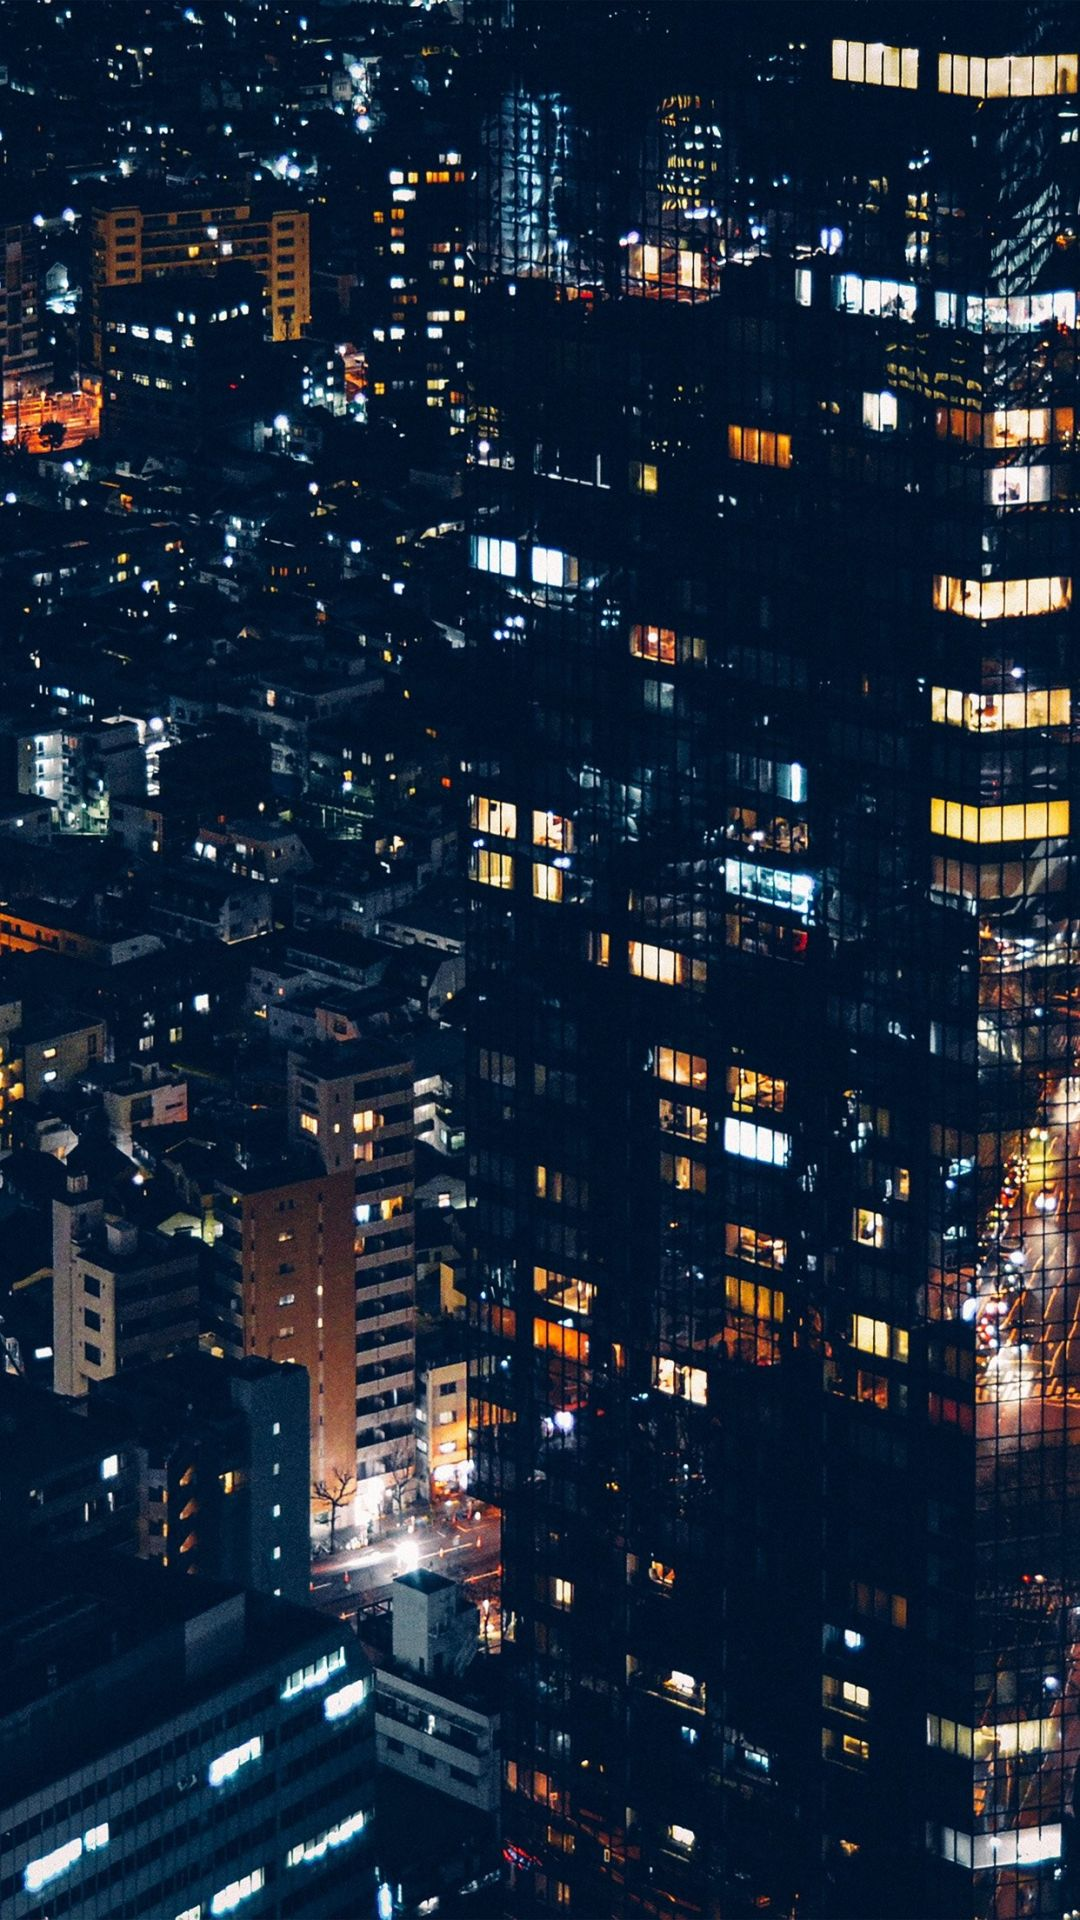 Night city - Android, iPhone, Desktop HD Backgrounds / Wallpapers (1080p, 4k) (485677) - Travel / World